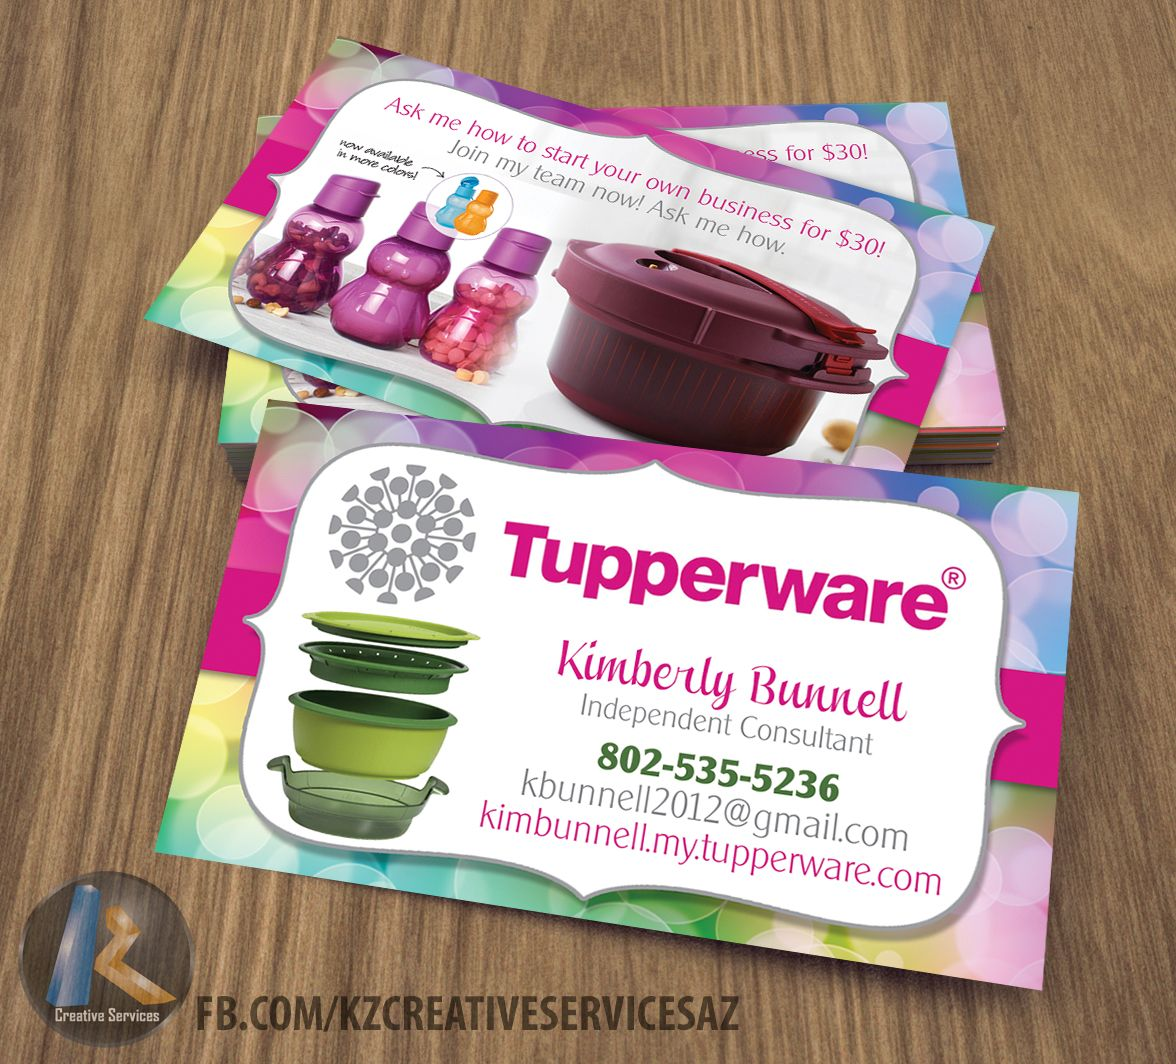 Tupperware business cards graphic design business ideas tupperware business cards magicingreecefo Choice Image